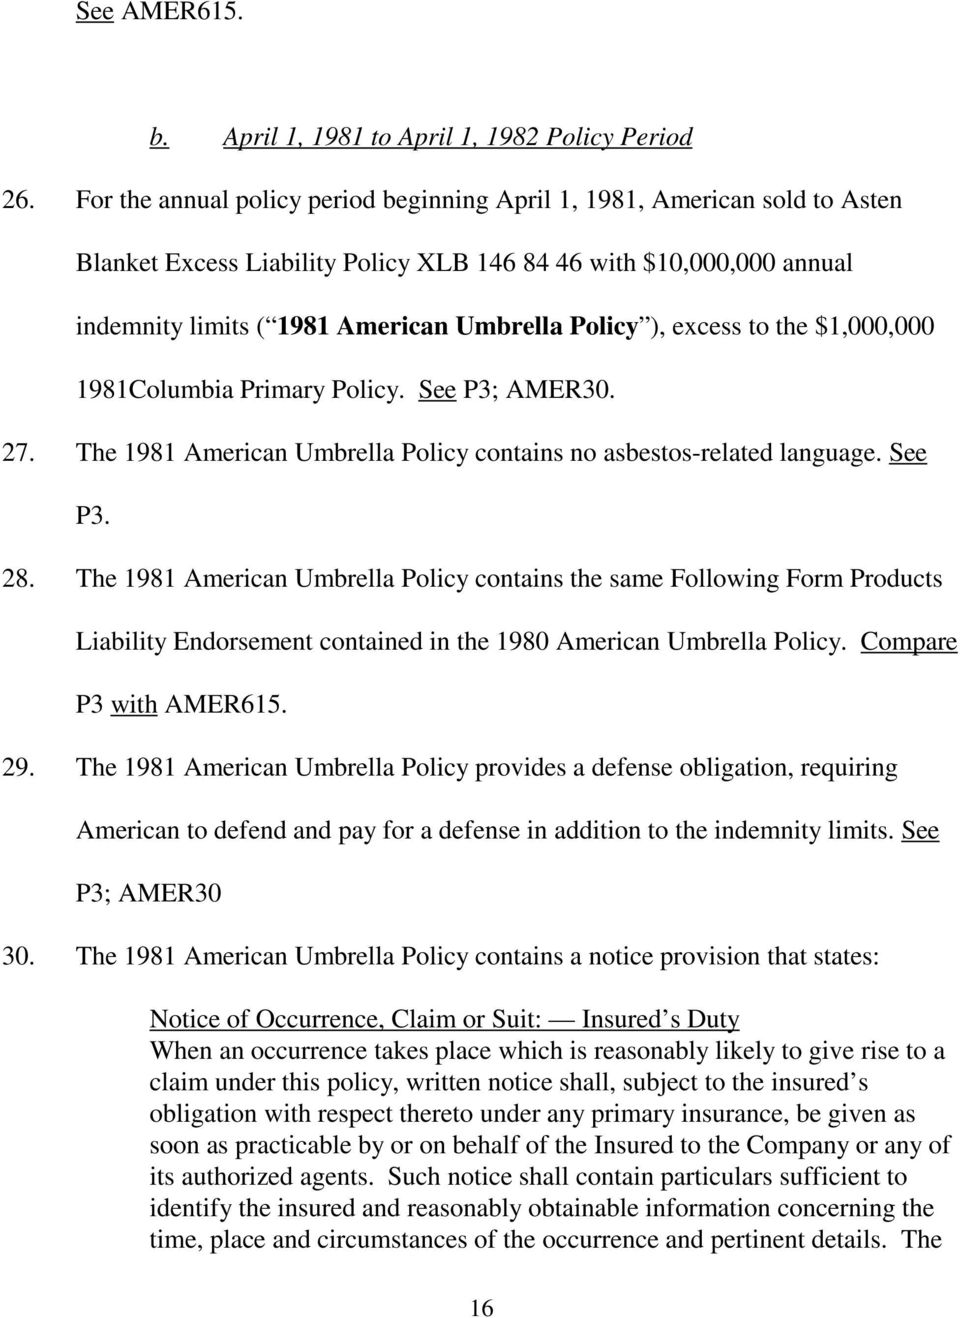 excess to the $1,000,000 1981Columbia Primary Policy. See P3; AMER30. 27. The 1981 American Umbrella Policy contains no asbestos-related language. See P3. 28.